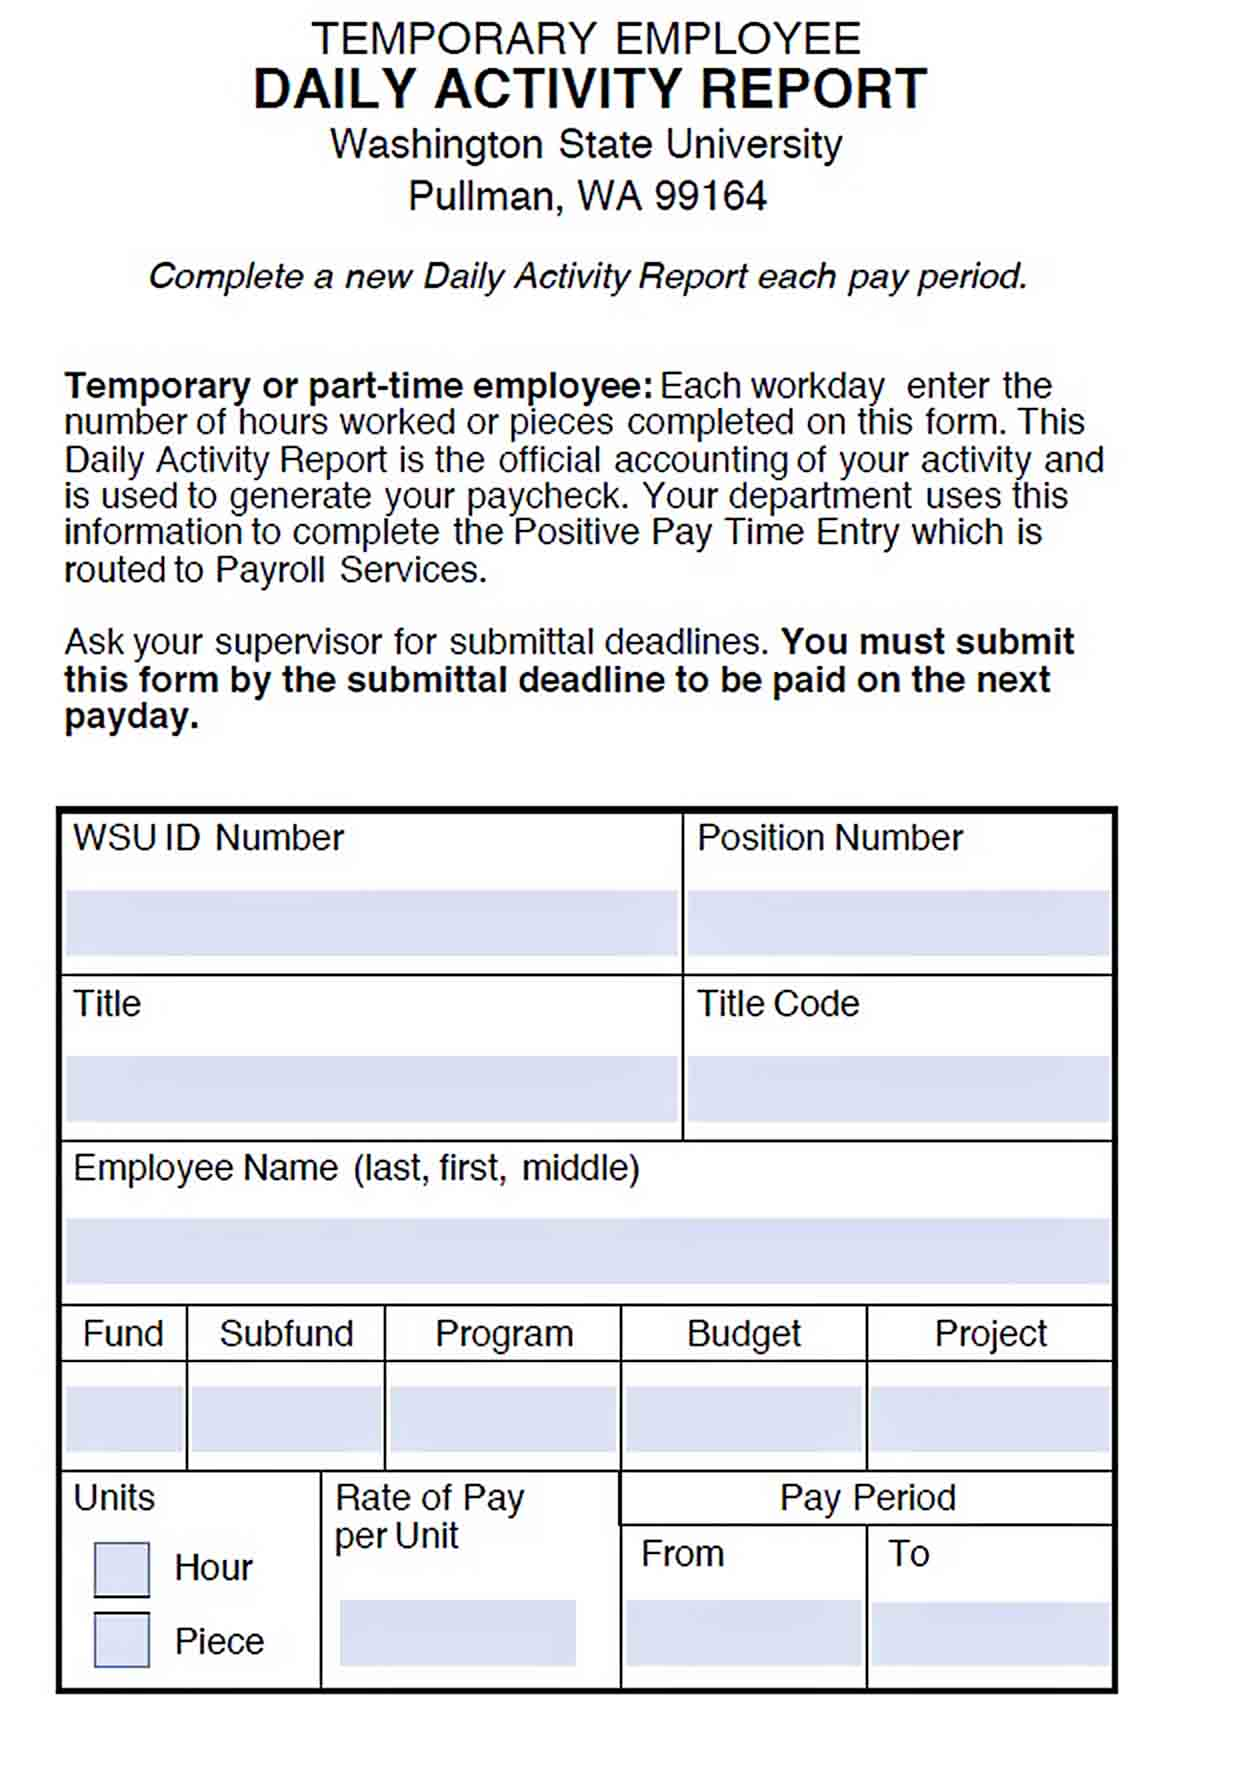 Templates Daily Activity Report for Temporary Employee